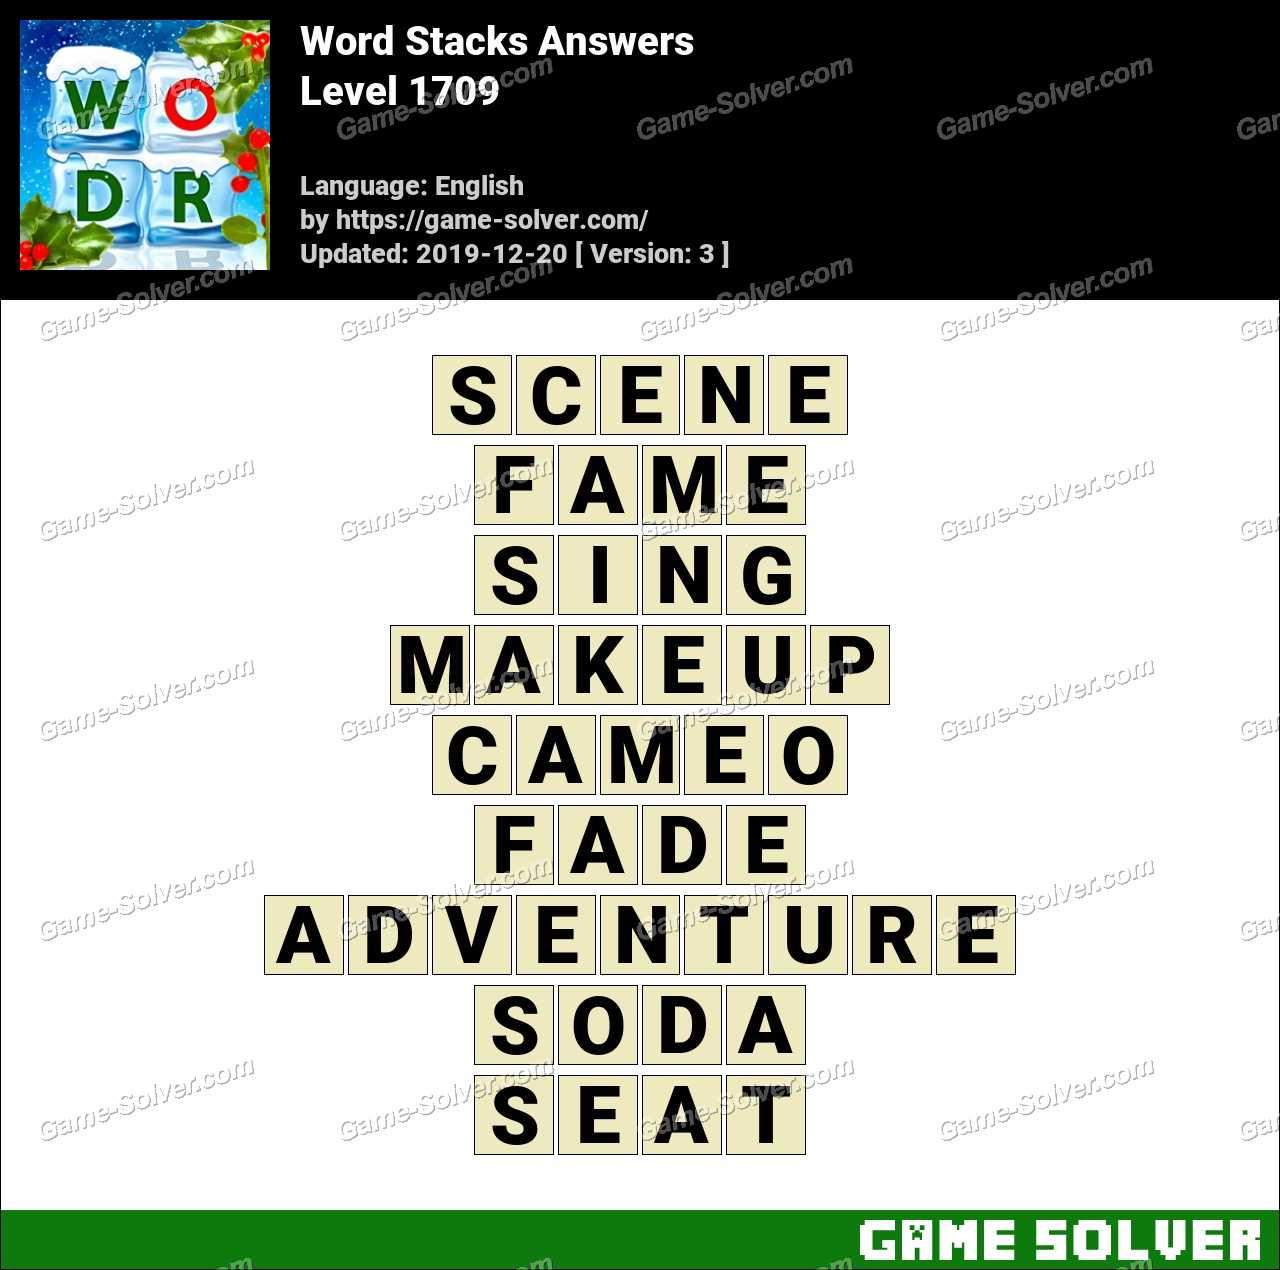 Word Stacks Level 1709 Answers